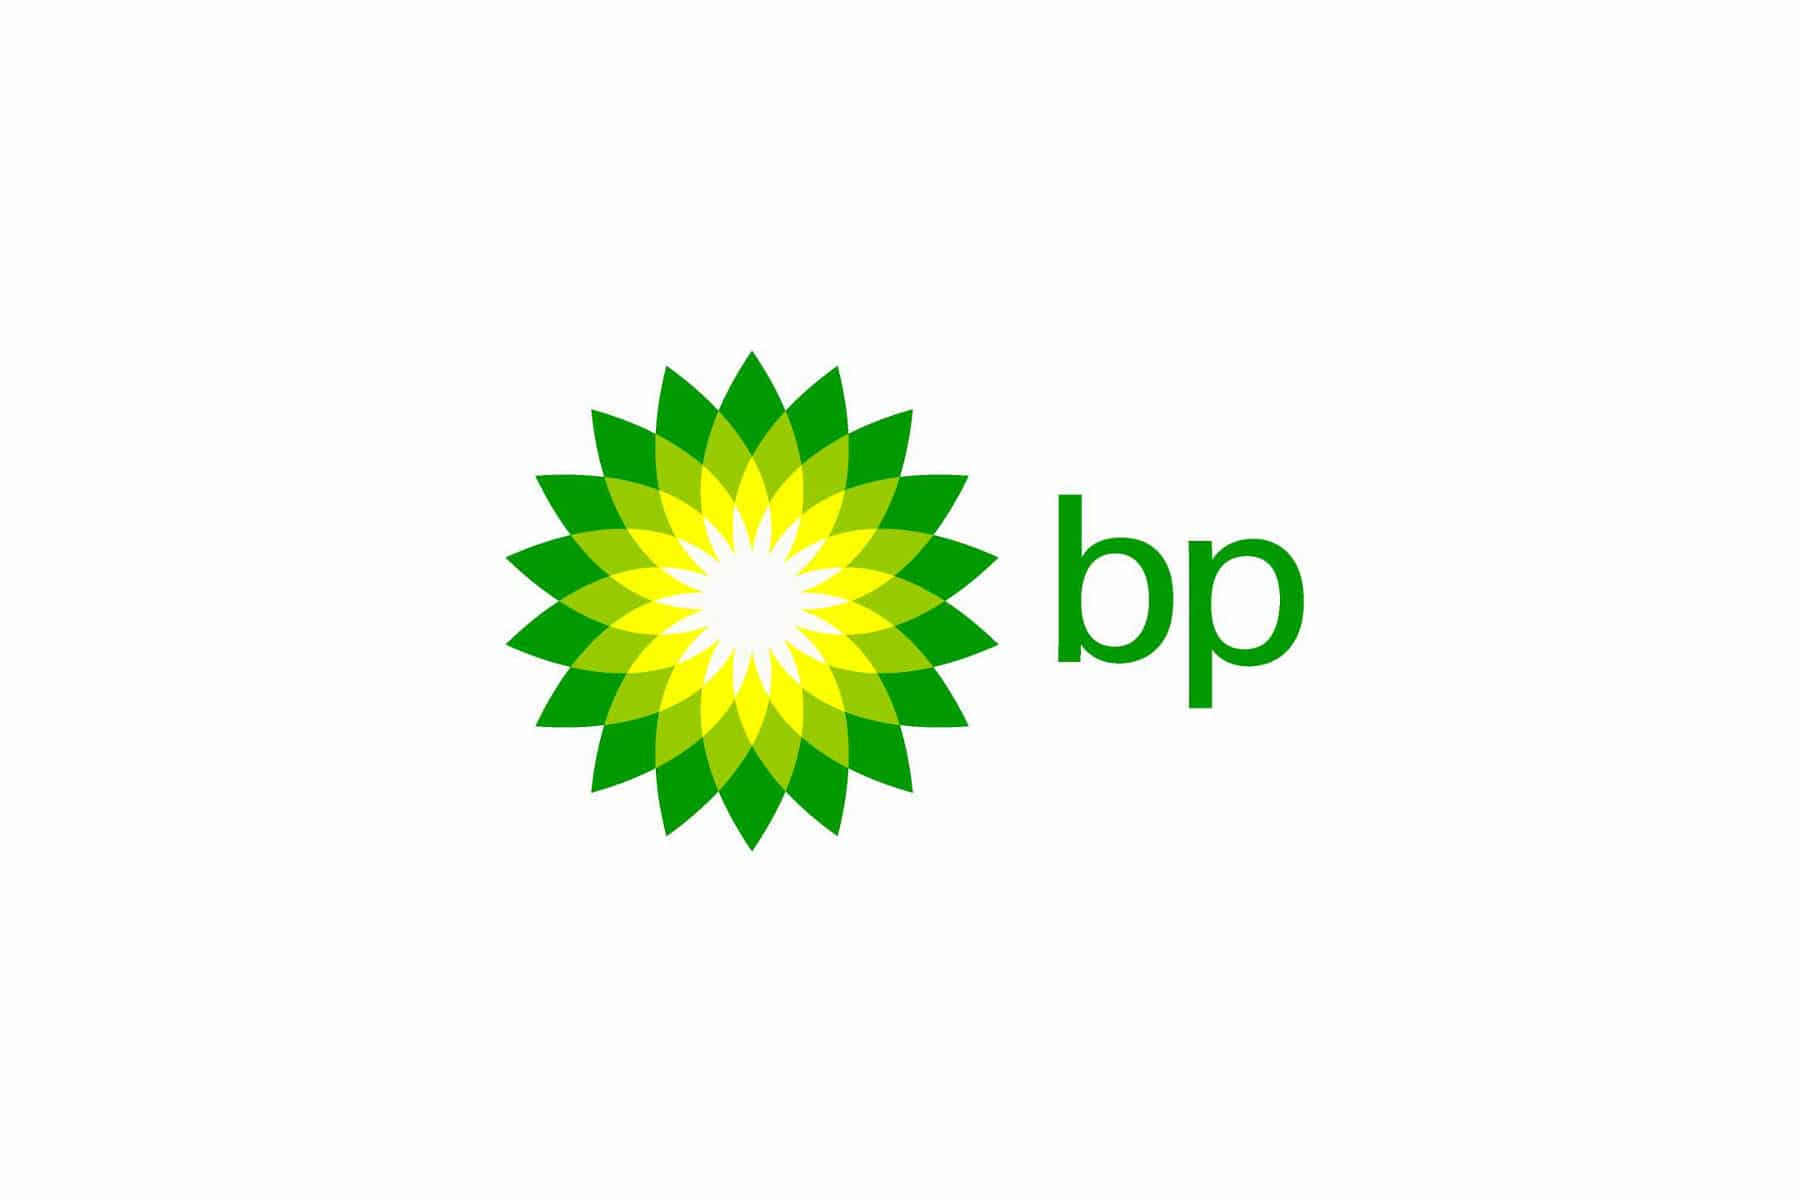 bp-logo-white-background-f5-e1499913620824.jpg